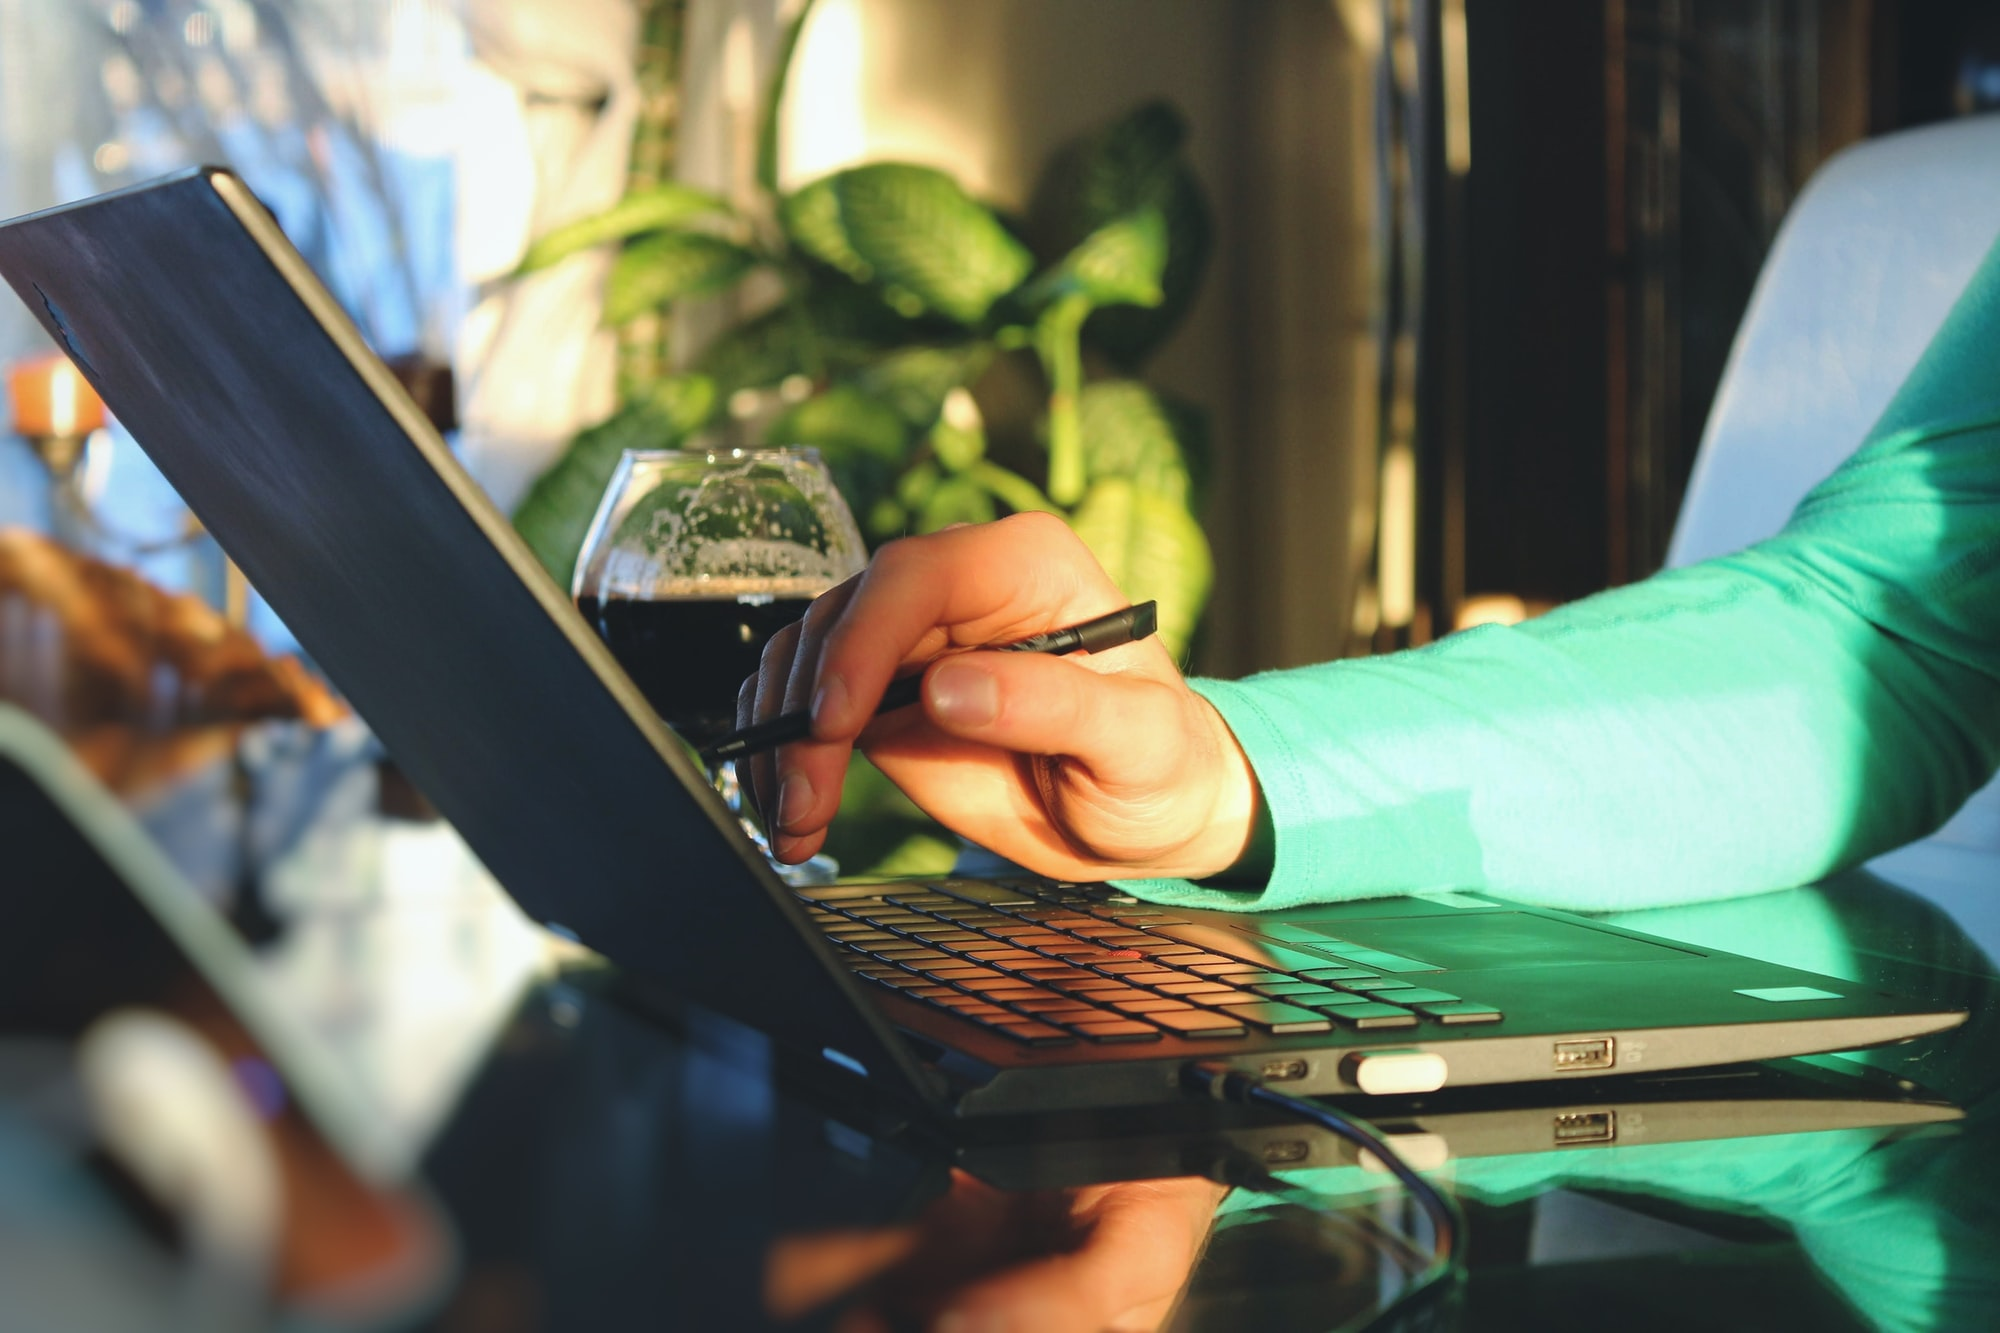 Young professional using a touchscreen laptop with his stylus with a bright sunny light and plants in the background.